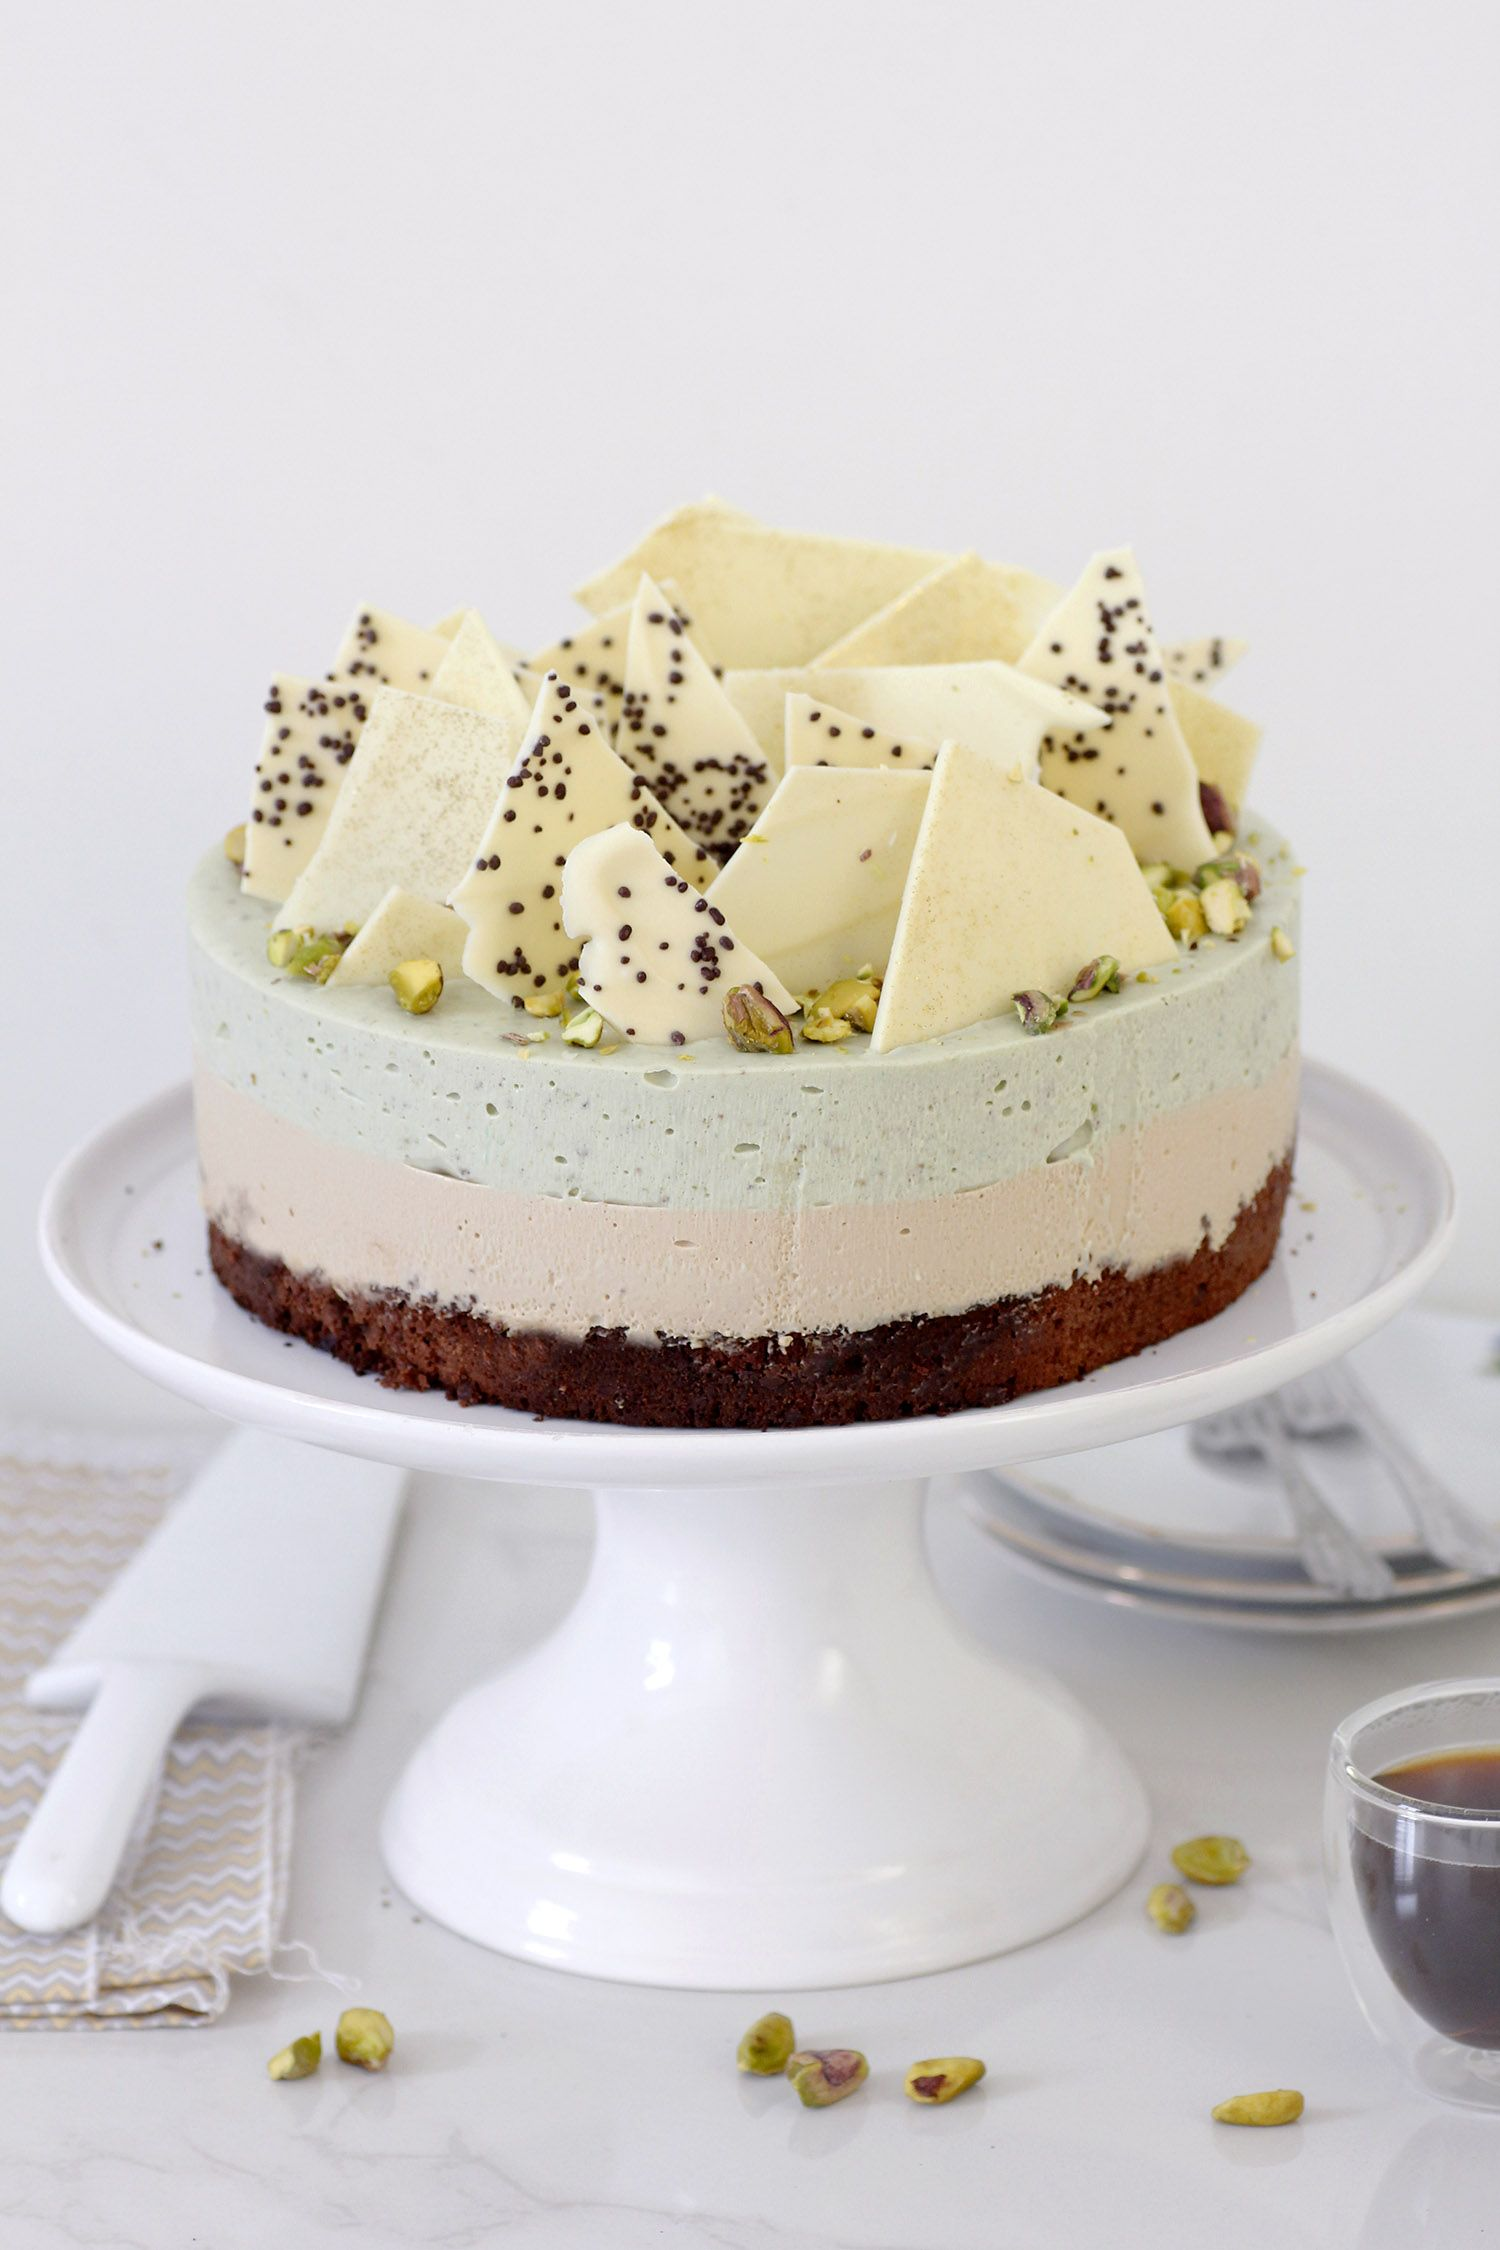 Pistachio Mousse Cake with Coffee and Chocolate Brownies